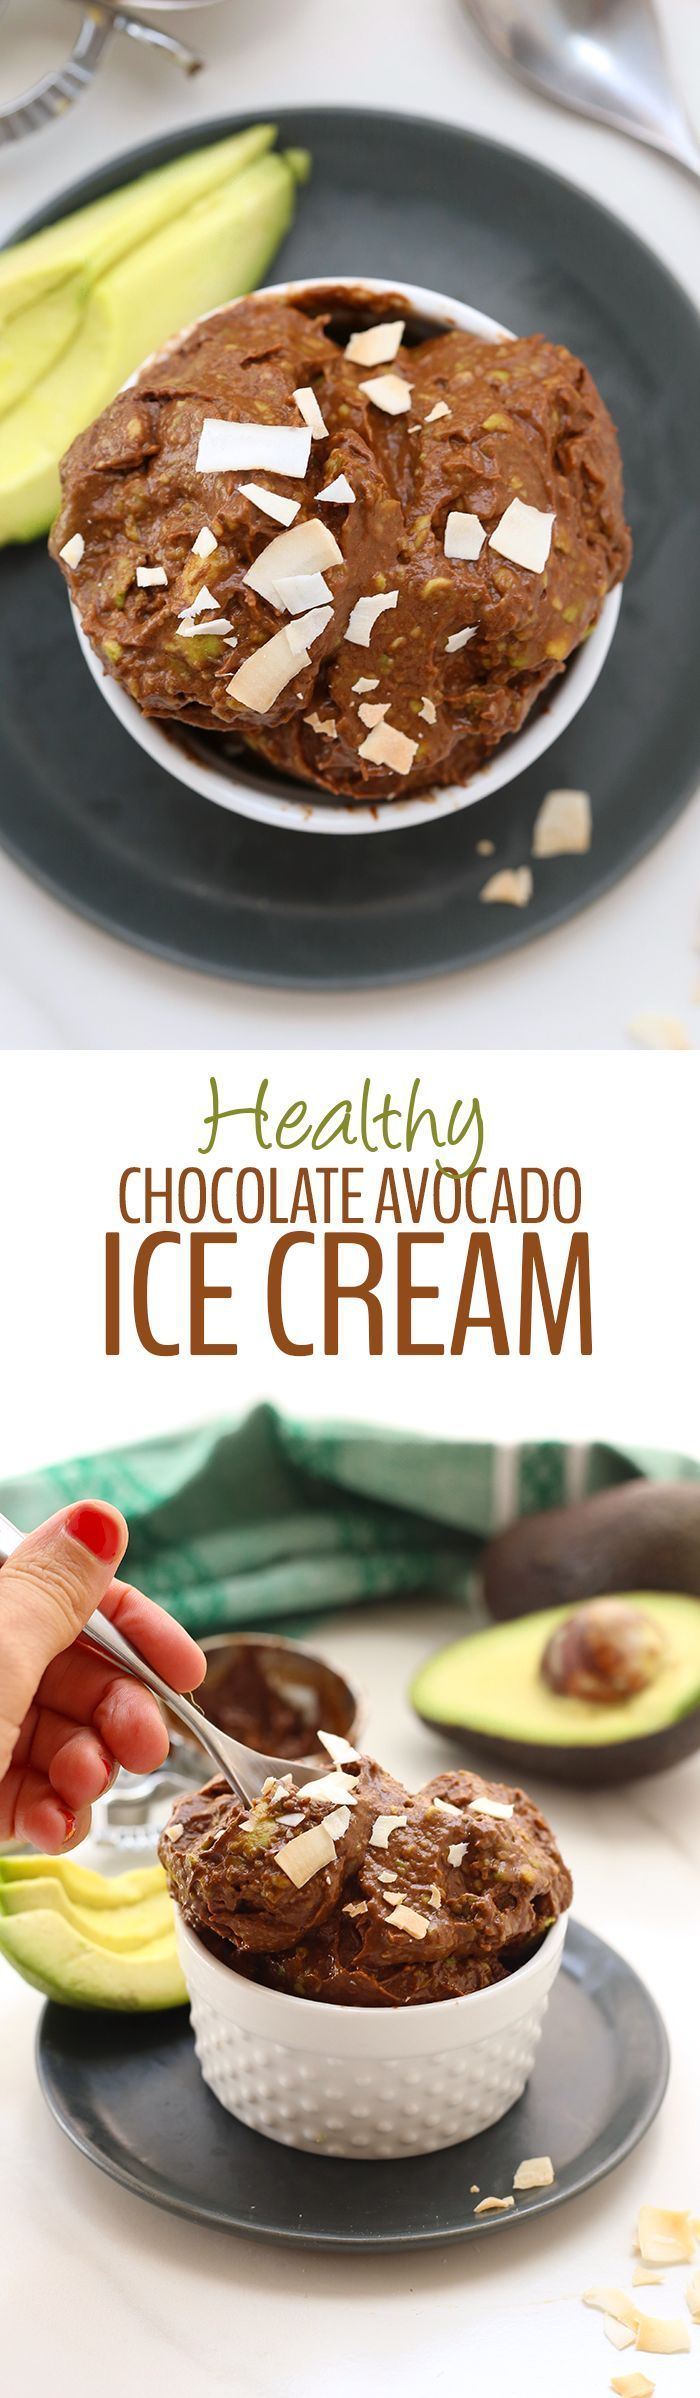 4 Ingredients is all you need for this No-Churn Healthy Chocolate Avocado Ice Cream. The perfect summer dessert recipe made for whole foods and ready in 5 minutes or less.